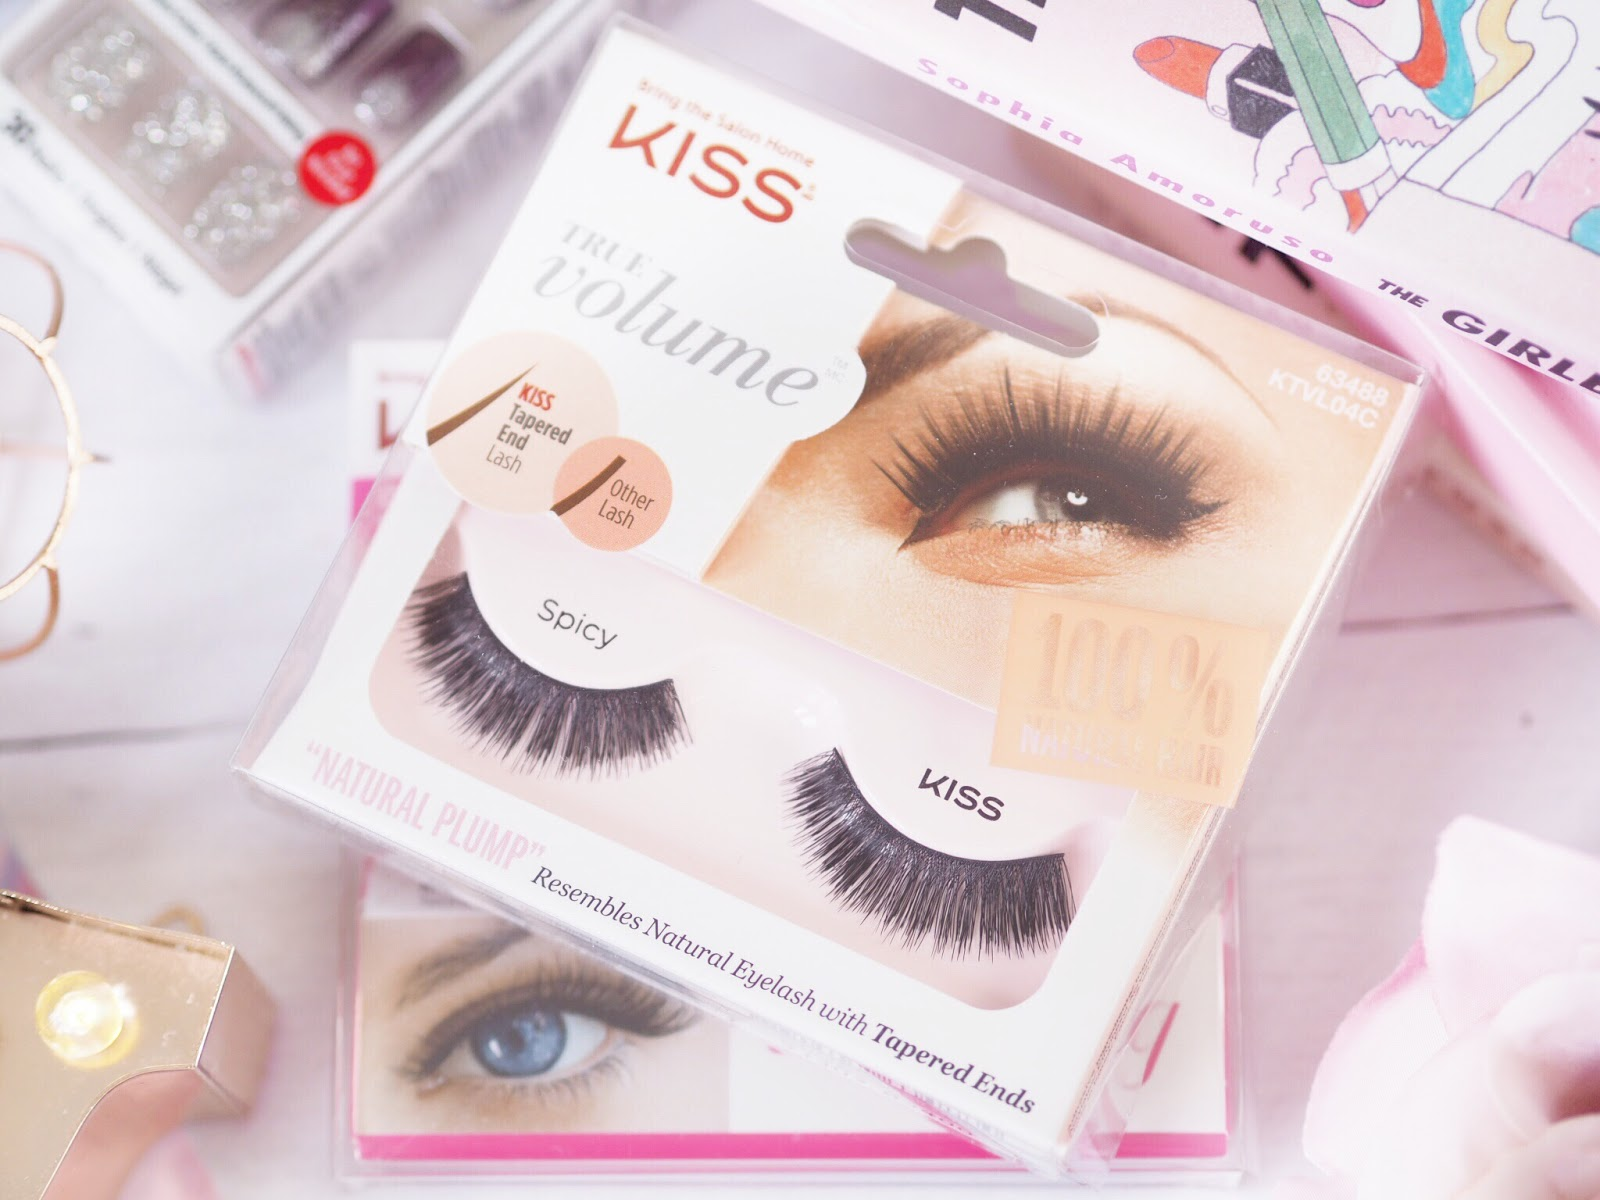 budget falsies, budget false eyelashes, fake eyelashes, strip eyelashes review